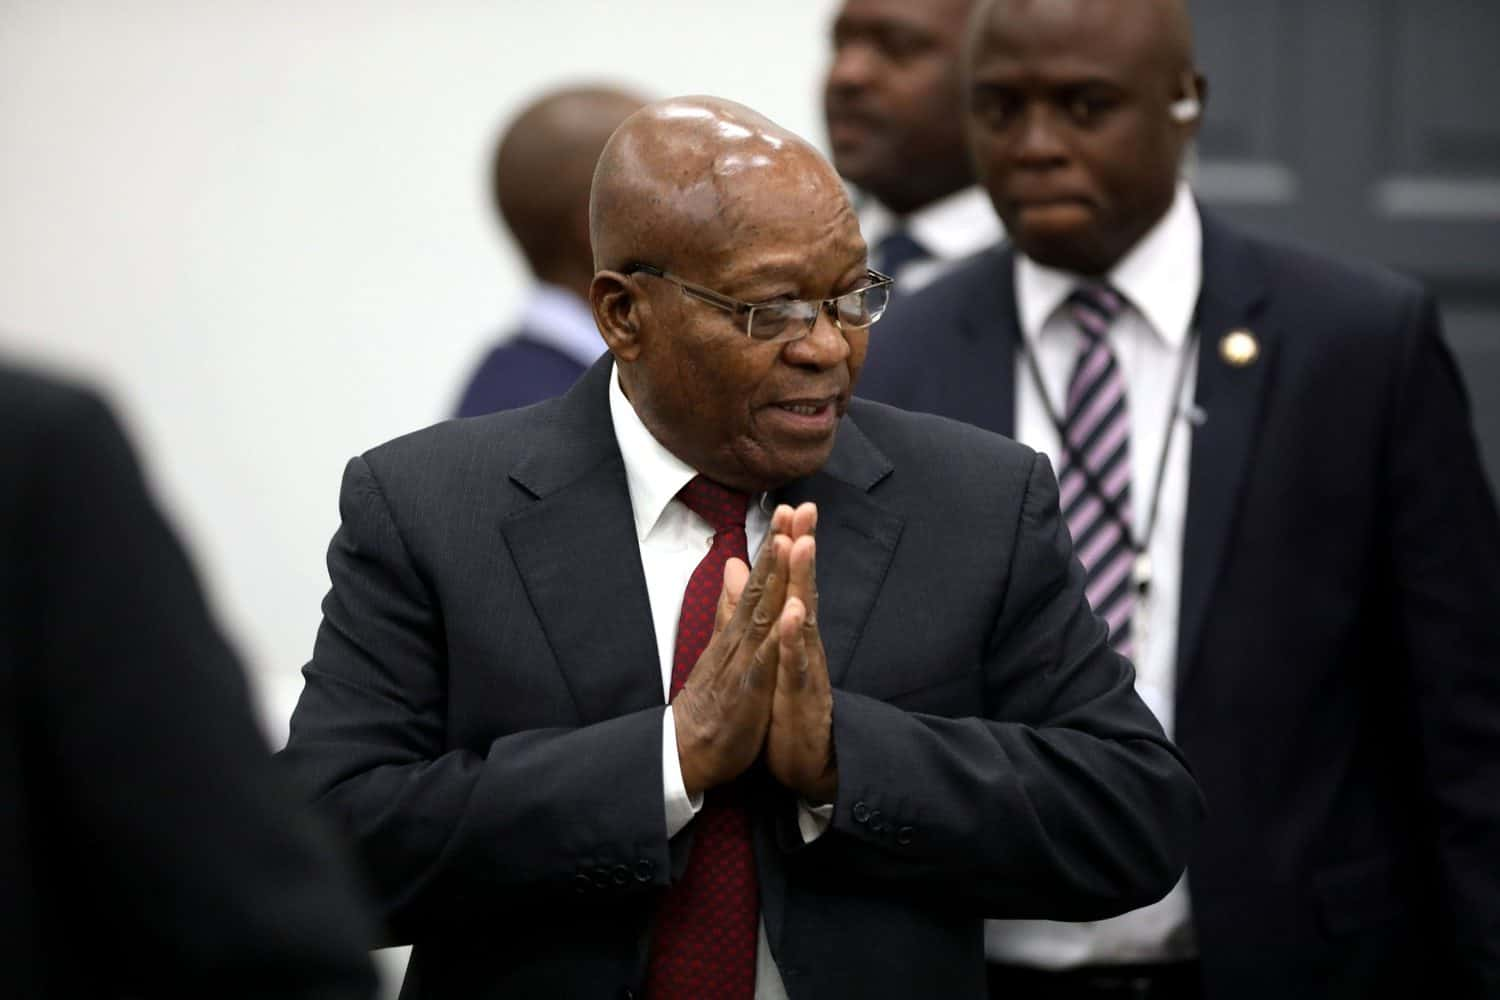 ConCourt set to rule on Zuma's application to rescind contempt conviction